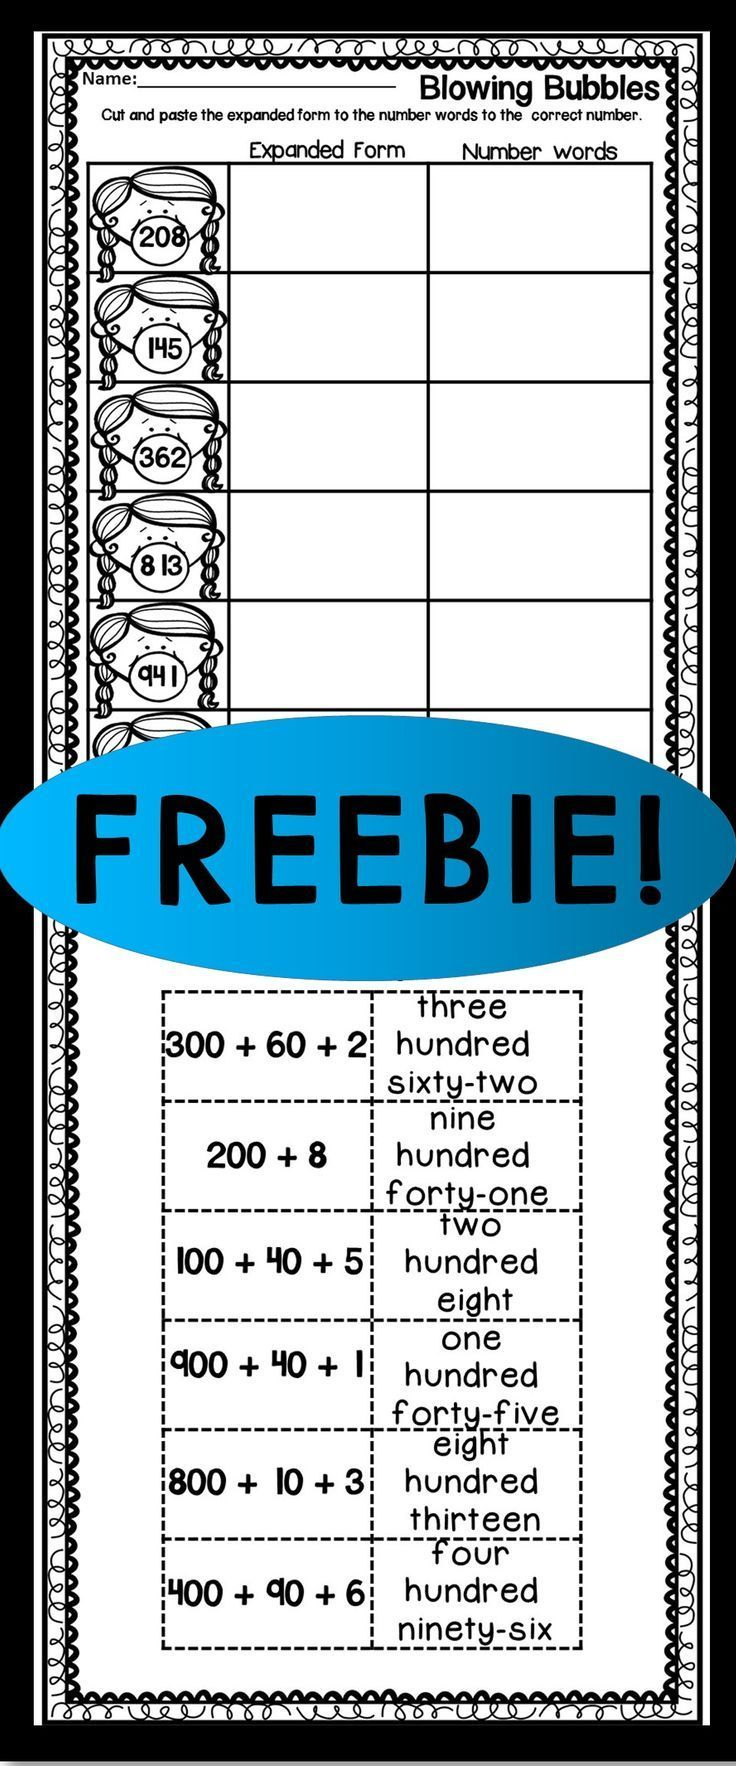 FREEBIE! EXPANDED FORM CUT AND PASTE | TpT FREE LESSONS | Pinterest ...